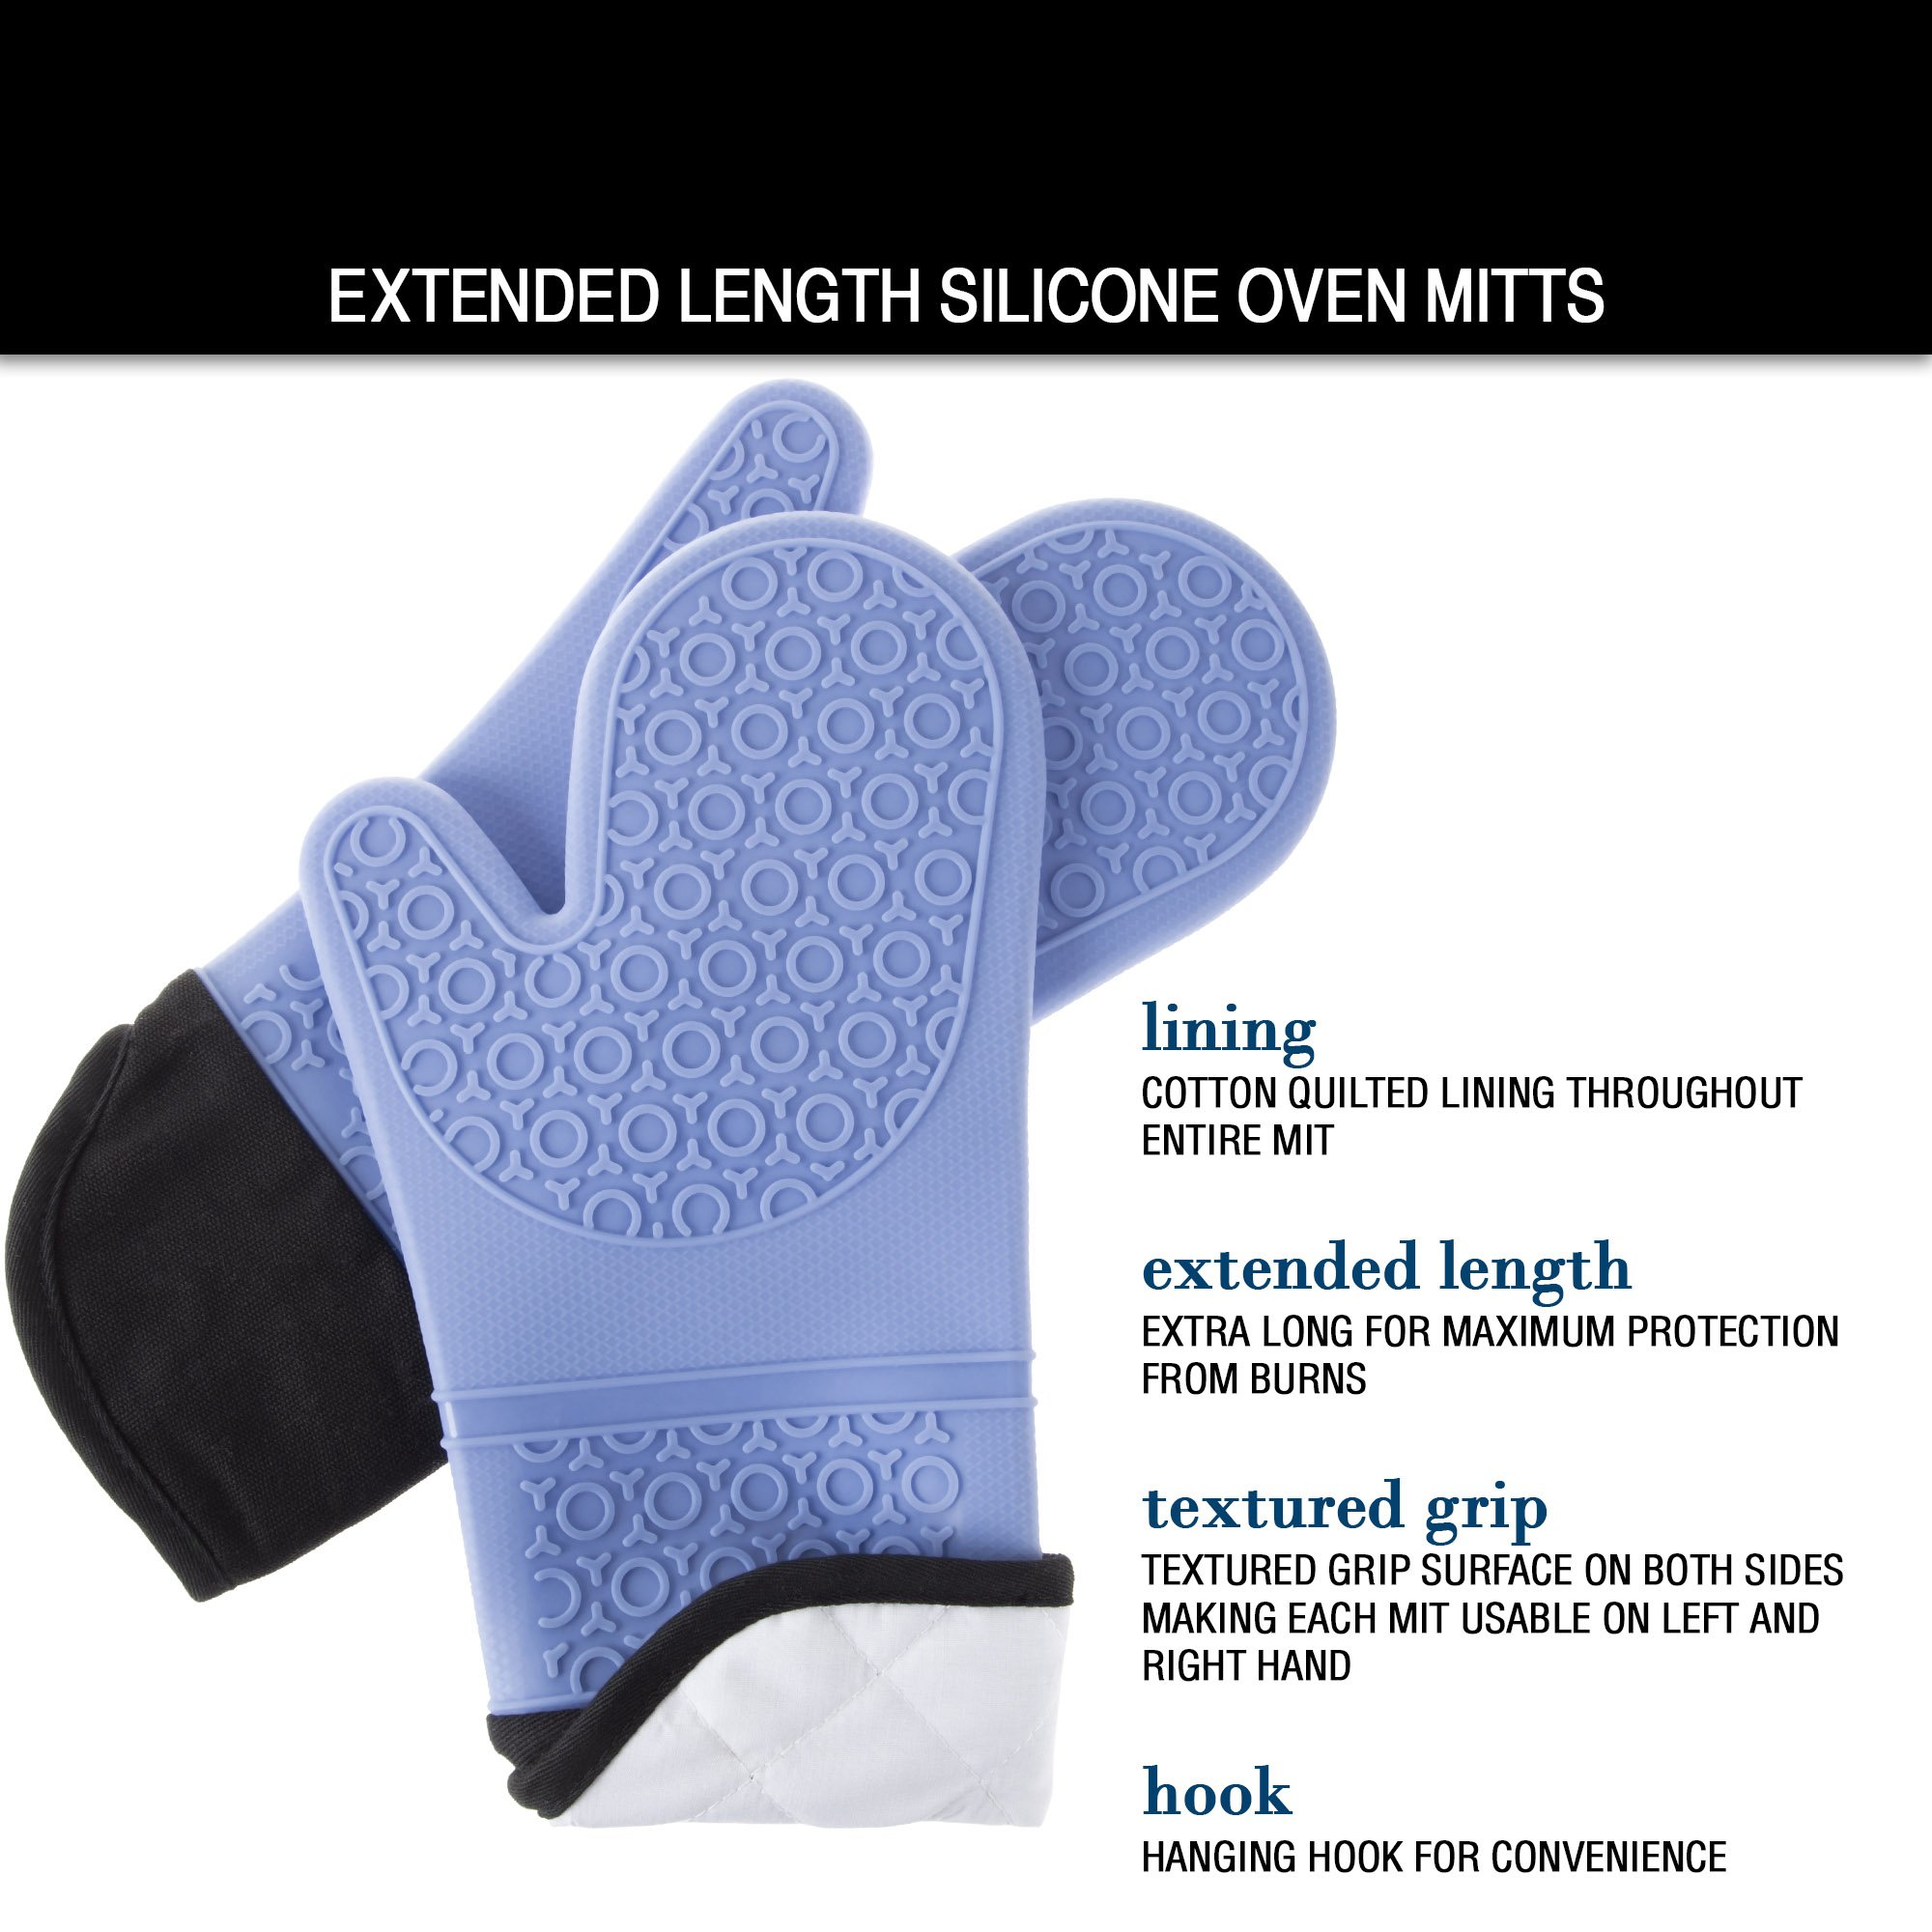 Silicone Oven Mitts – Extra Long Professional Quality Heat Resistant with Quilted Lining and 2-sided Textured Grip – 1 pair Blue by Lavish Home by Lavish Home (Image #4)